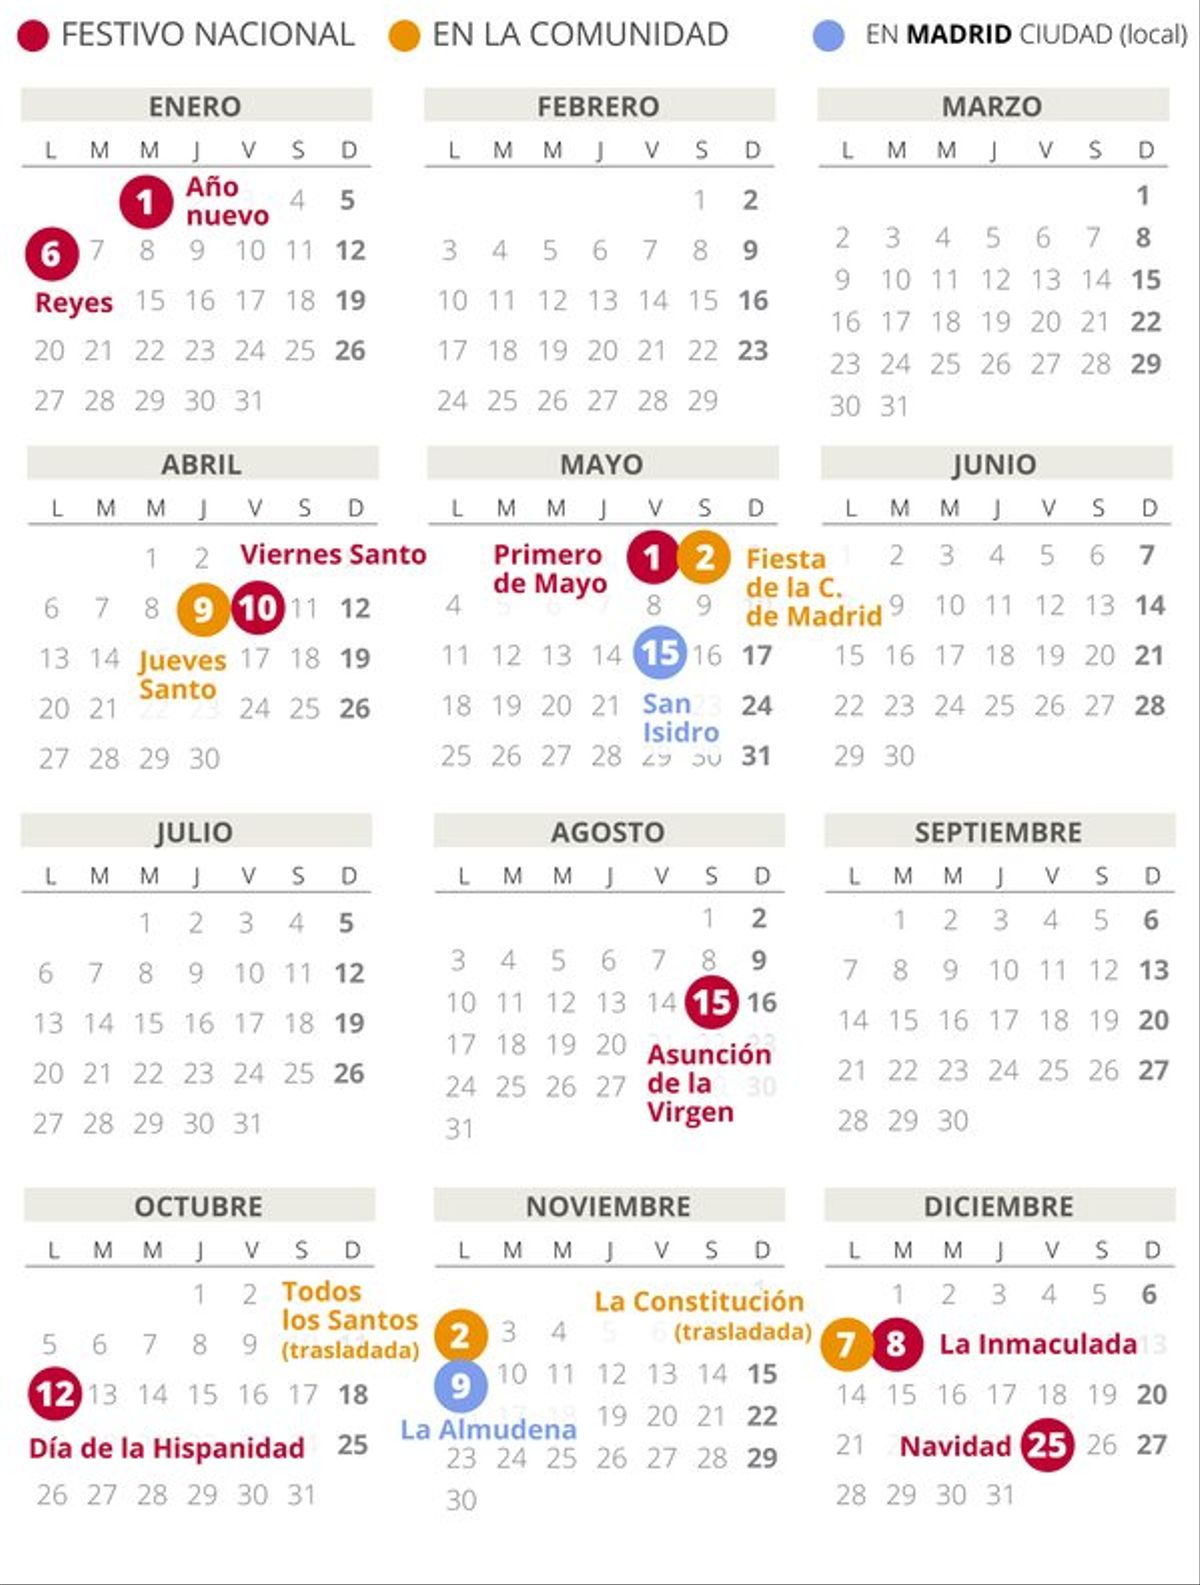 Calendario Laboral 2021 (Comunidad de Madrid)